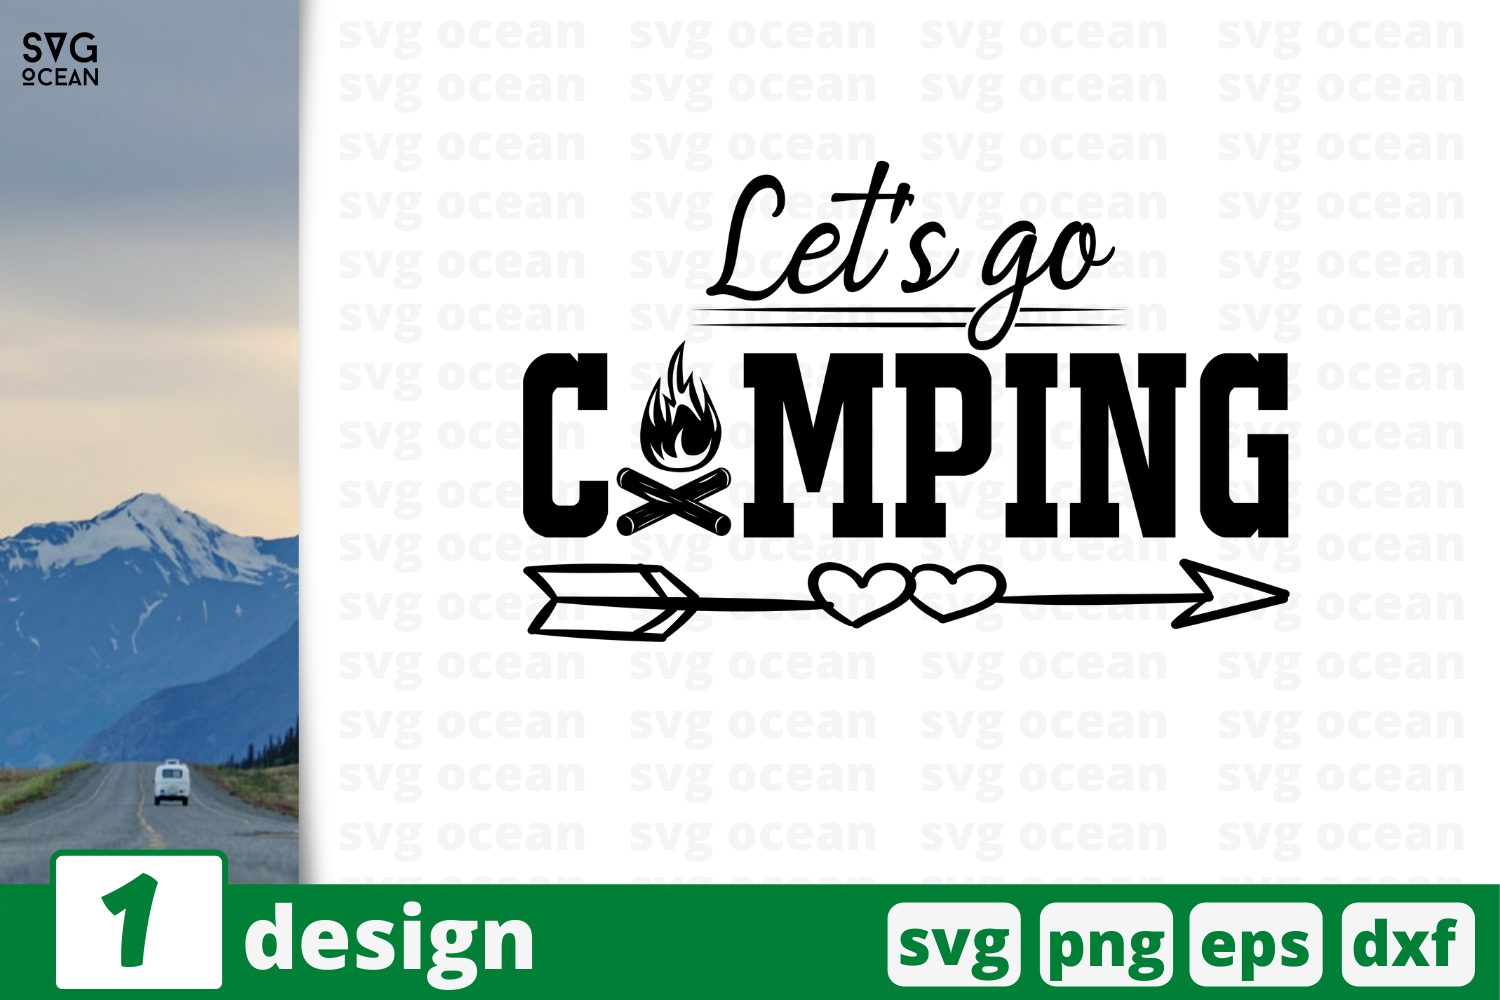 Download Free Let S Go Camping Graphic By Svgocean Creative Fabrica for Cricut Explore, Silhouette and other cutting machines.